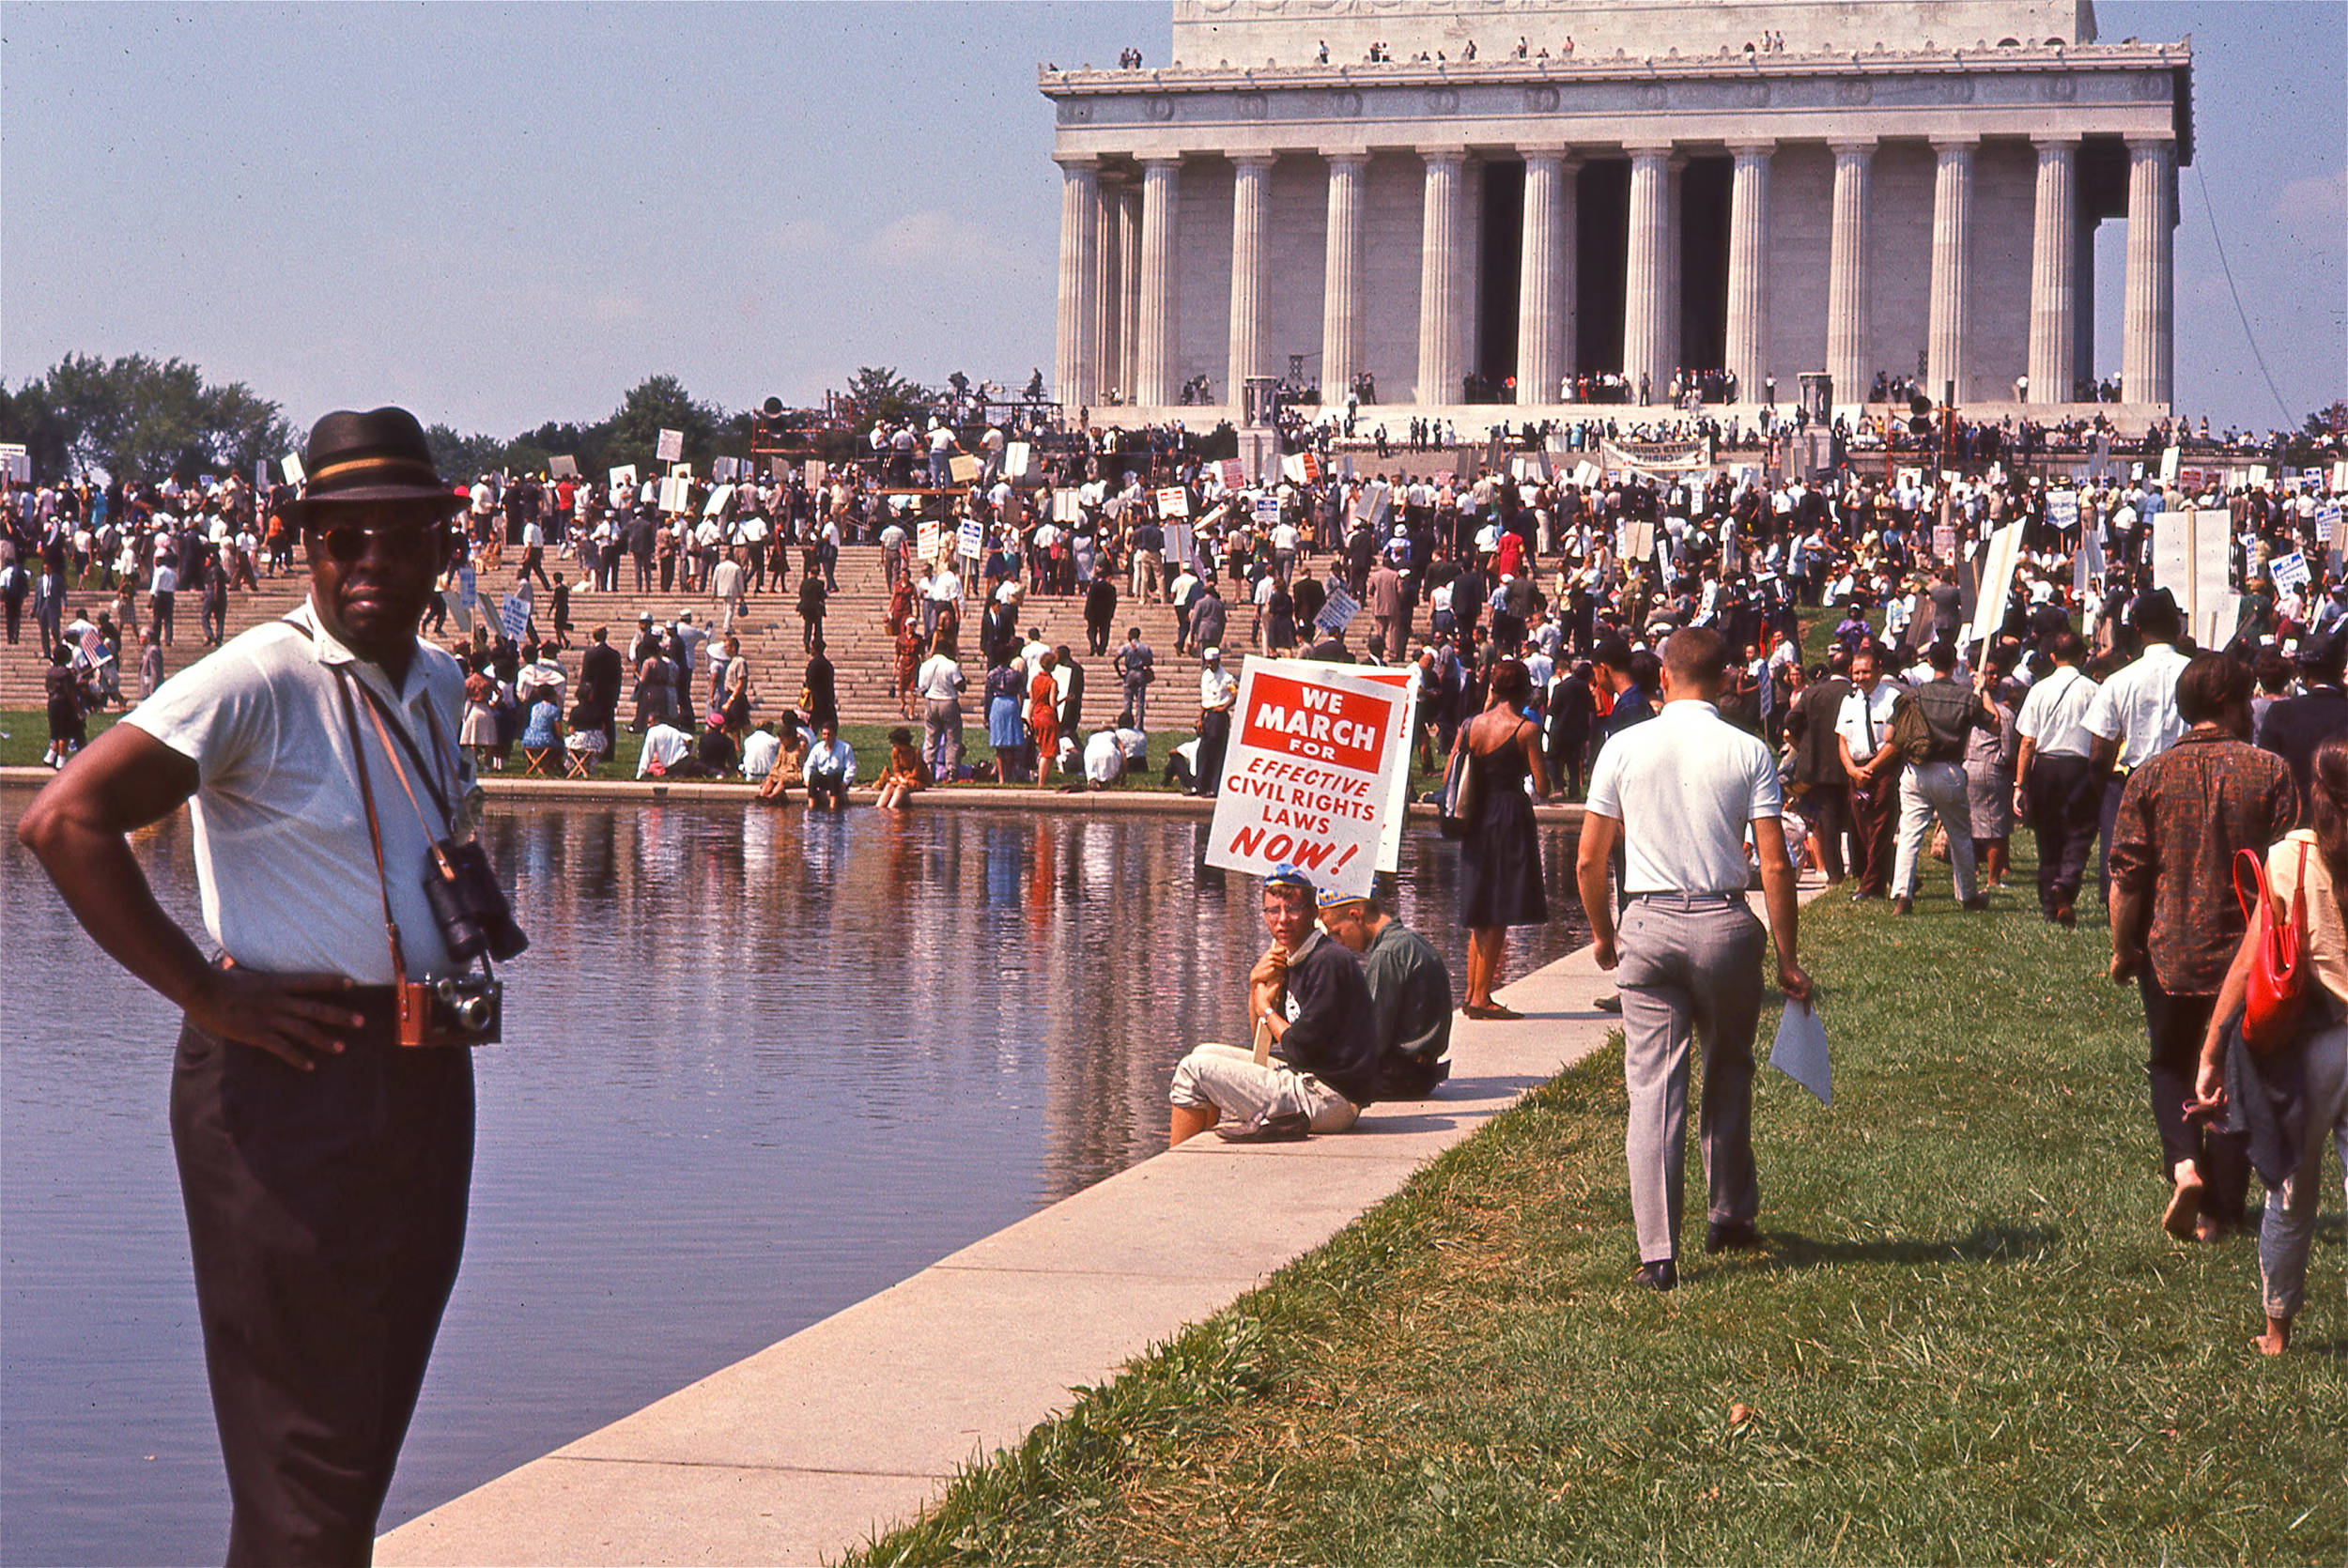 Crowds gather at the Lincoln Memorial for the March on Washington, 1963. Photo courtesy of Magnolia Pictures.